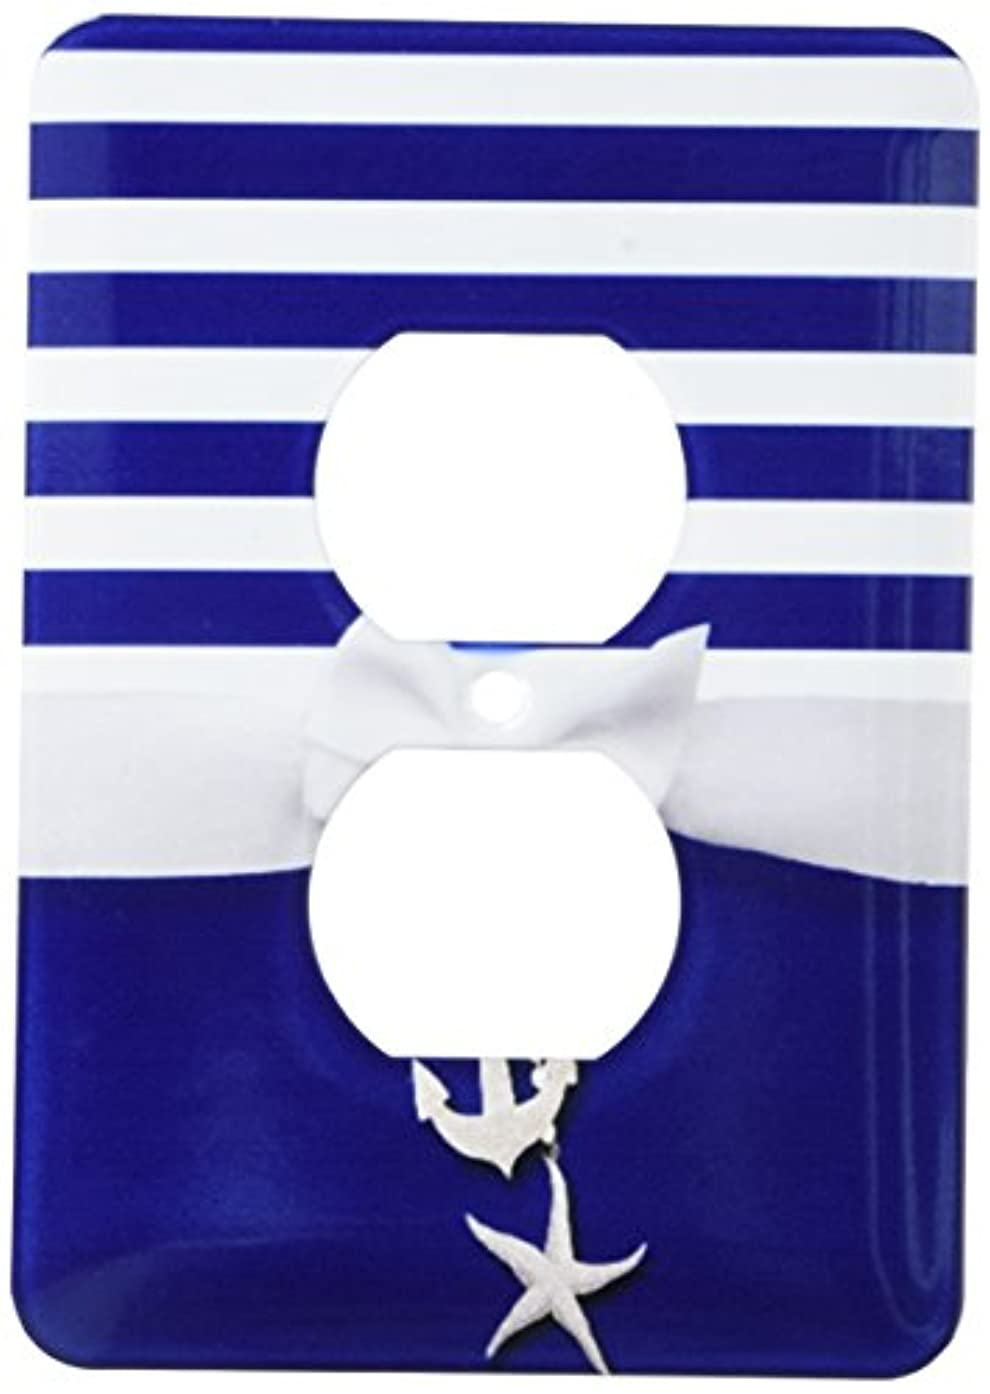 3dRose lsp_151234_6 Nautical Navy Blue and White Stripes 2D Ribbon Bow Graphic and Printed Anchor and Starfish Charms Light Switch Cover